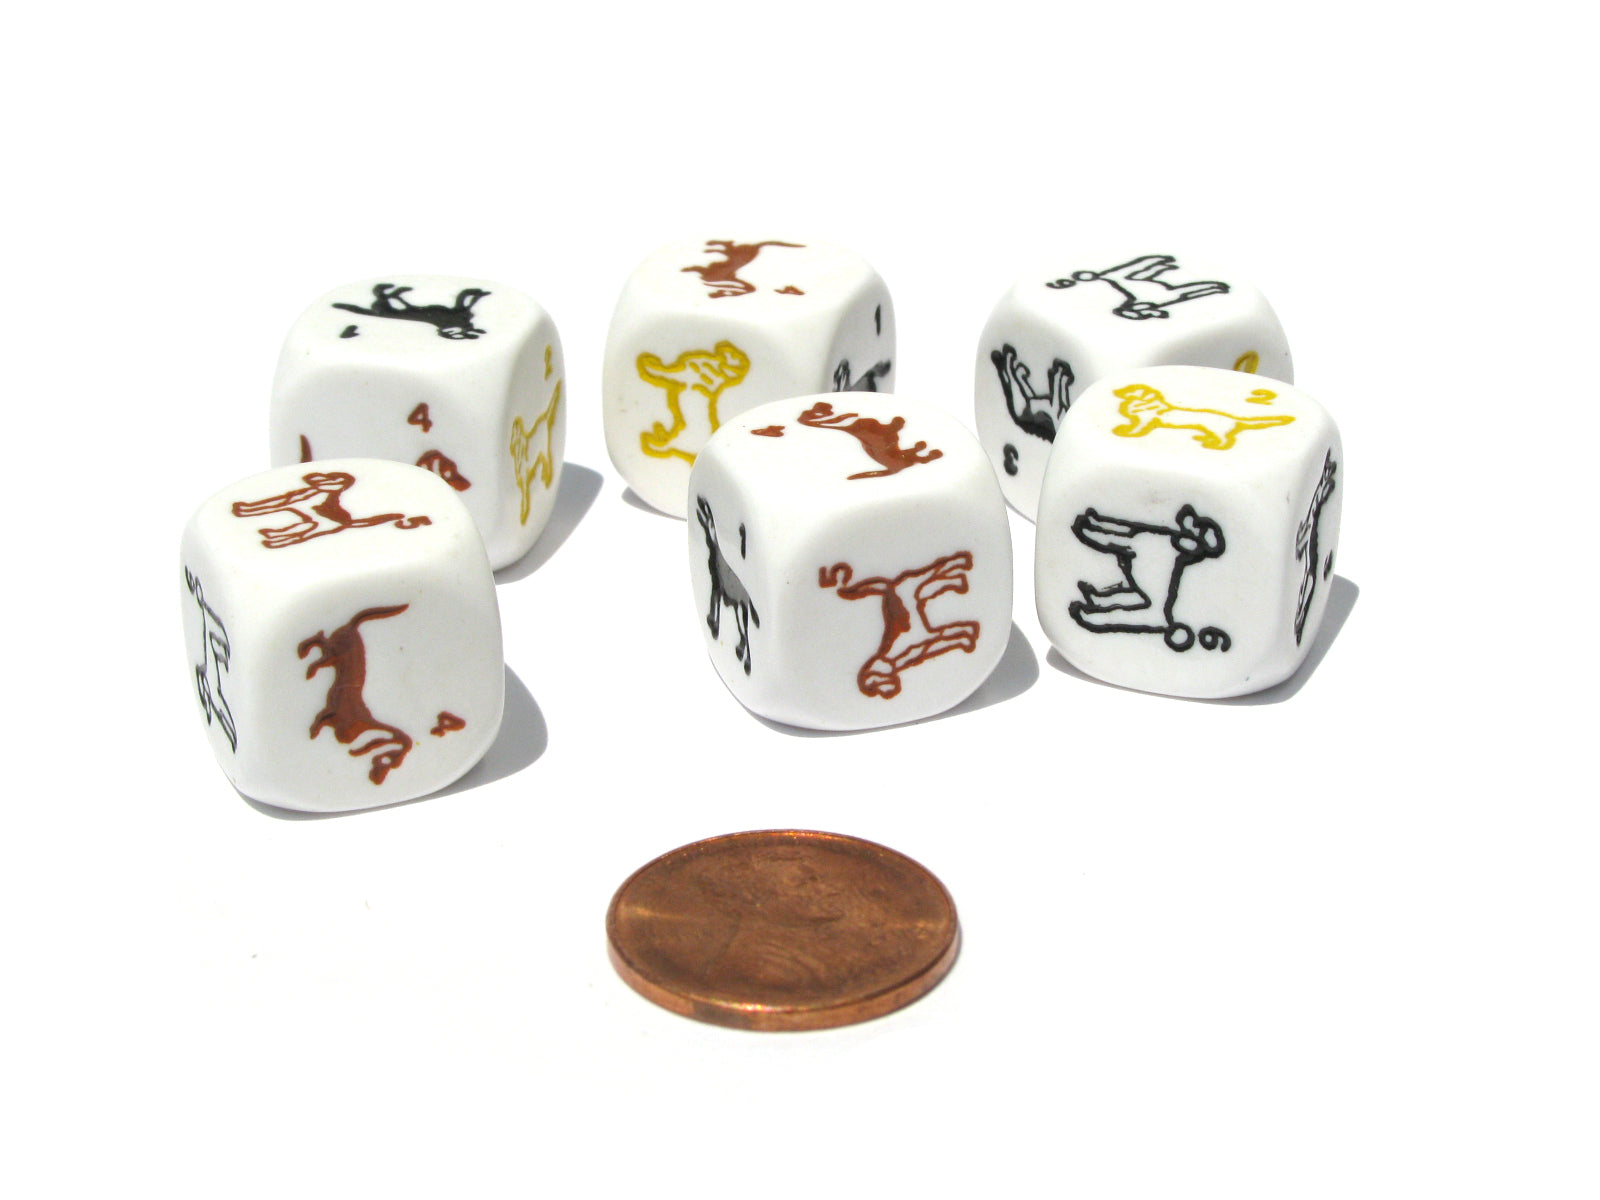 Set of 6 Dog Dice - 16mm D6 Round Edge - White with Multi-Color Etched Animals